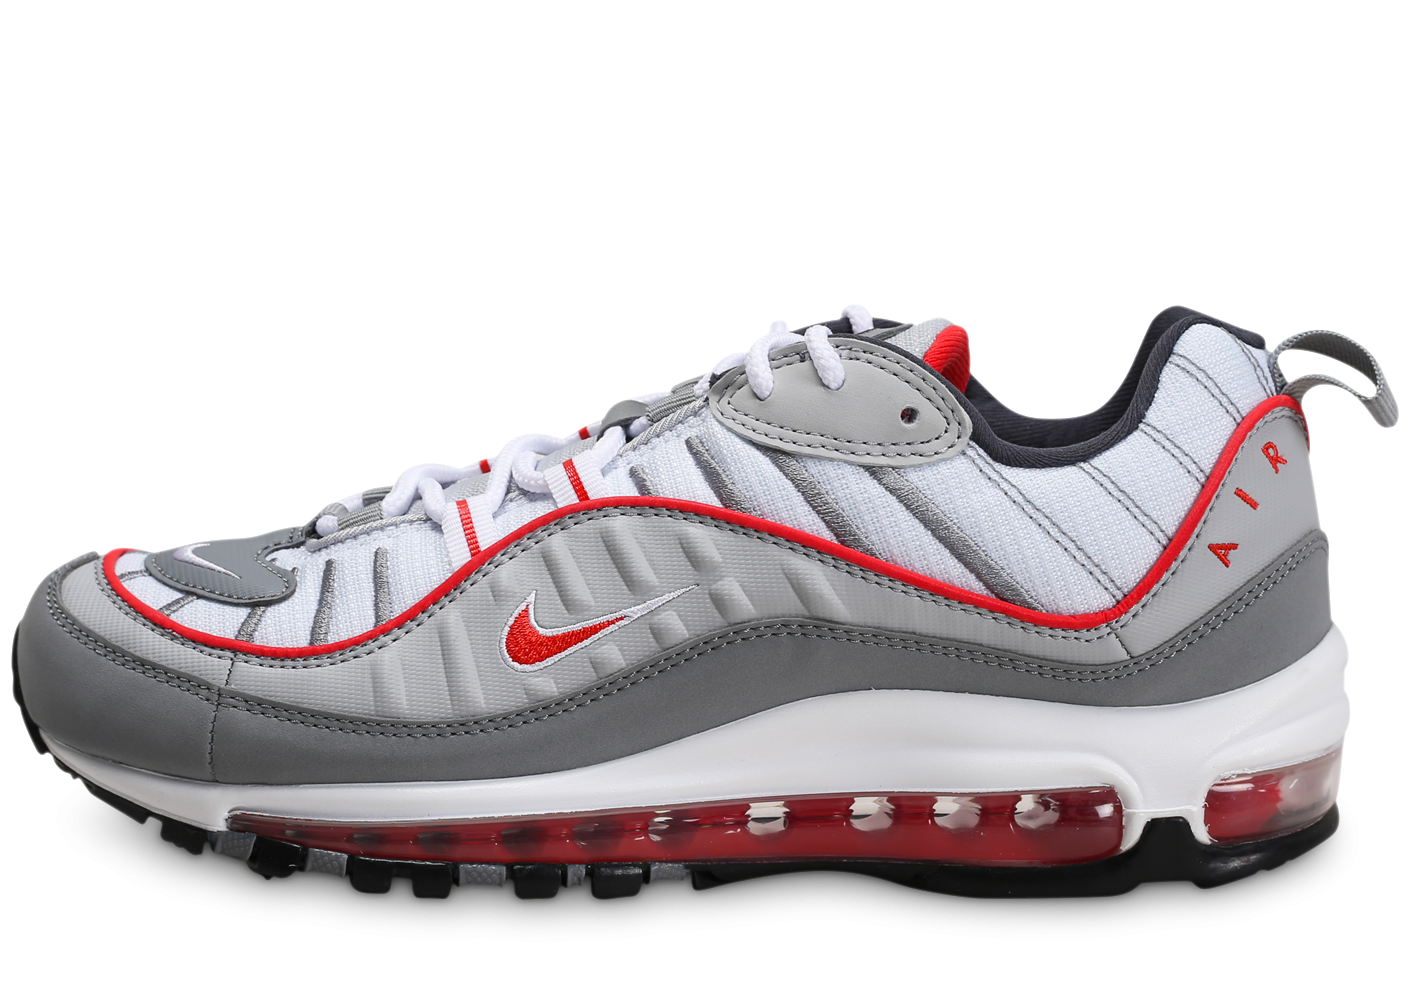 Nike Air Max 98 gris rouge - Chaussures Baskets homme - Pochta